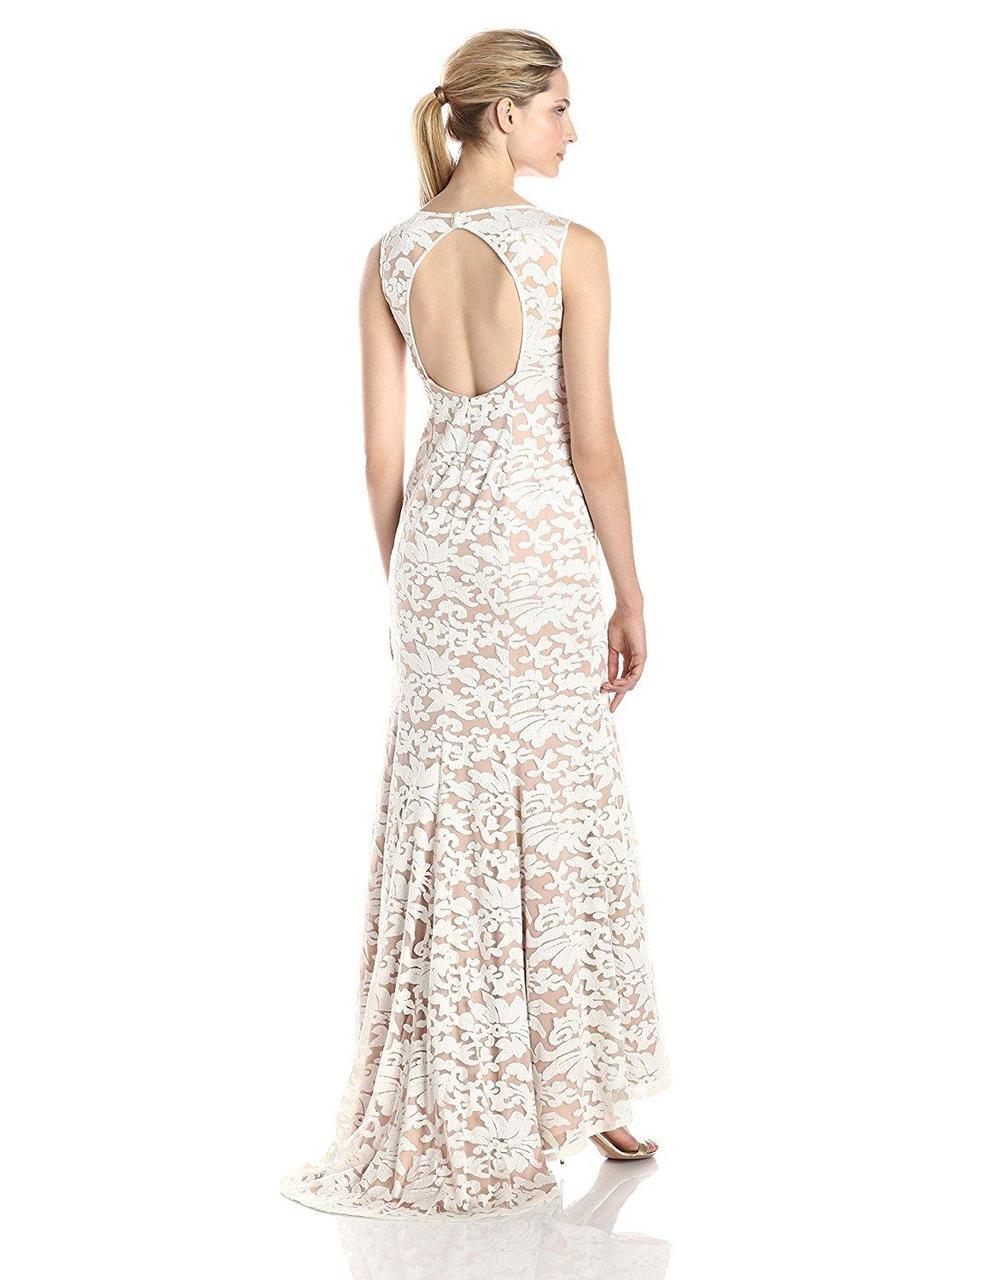 Adrianna Papell - 91906310 Embroidered Sleeveless Evening Gown in White and Neutral